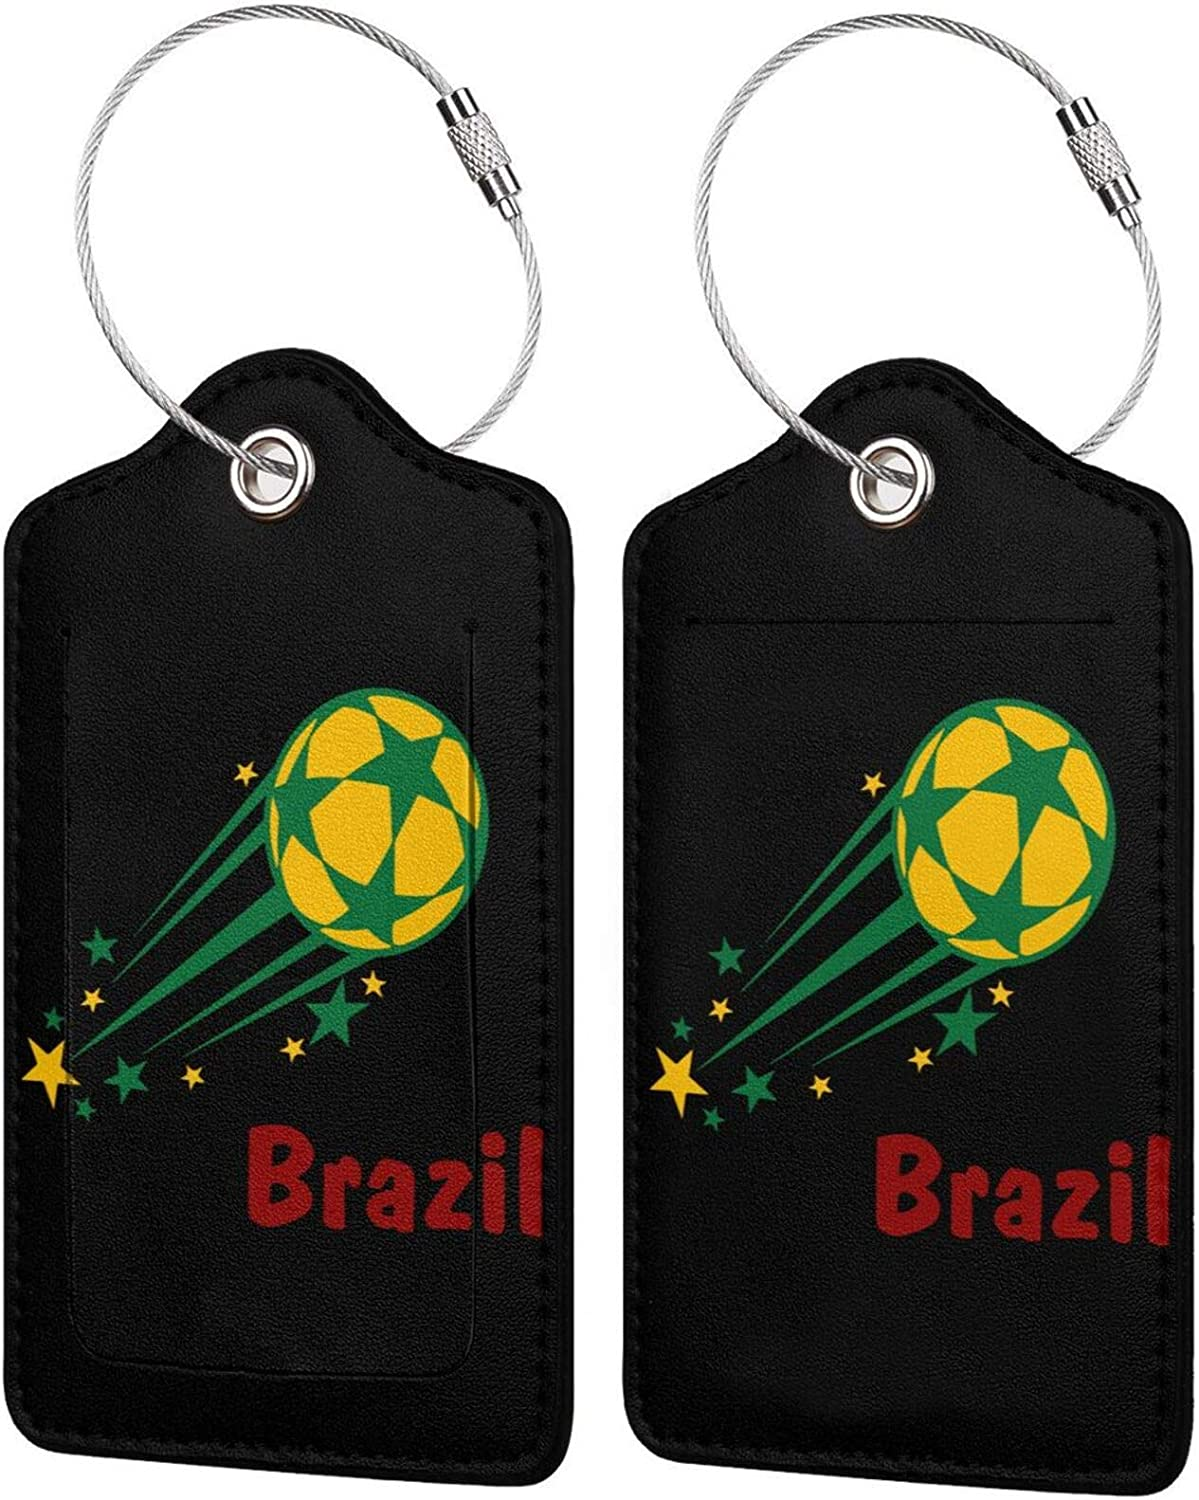 Fashionable Flying Brazil Soccer PU Leather Rectangl tag Luggage Bag Cash special price Baggage